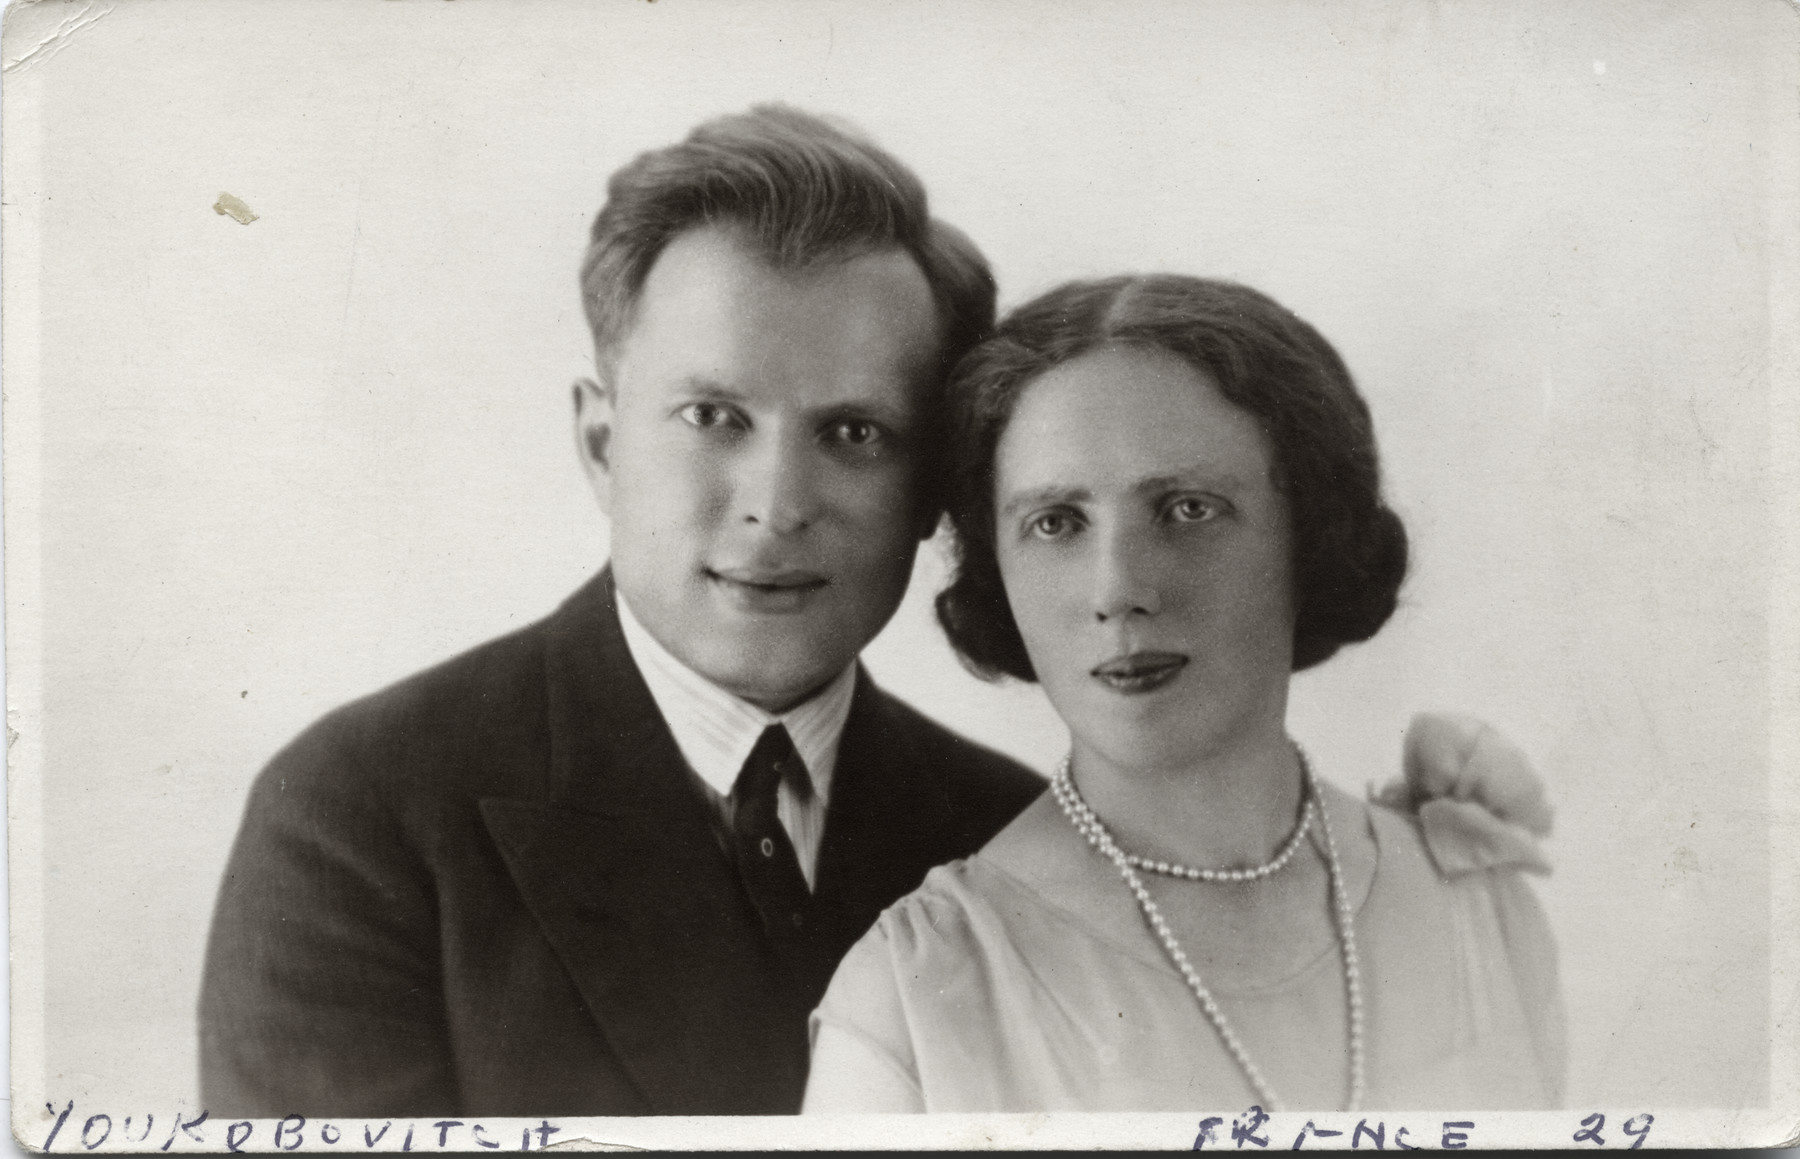 Portrait of Hersh and Rivka (Goldfarb) Jakubovitch.